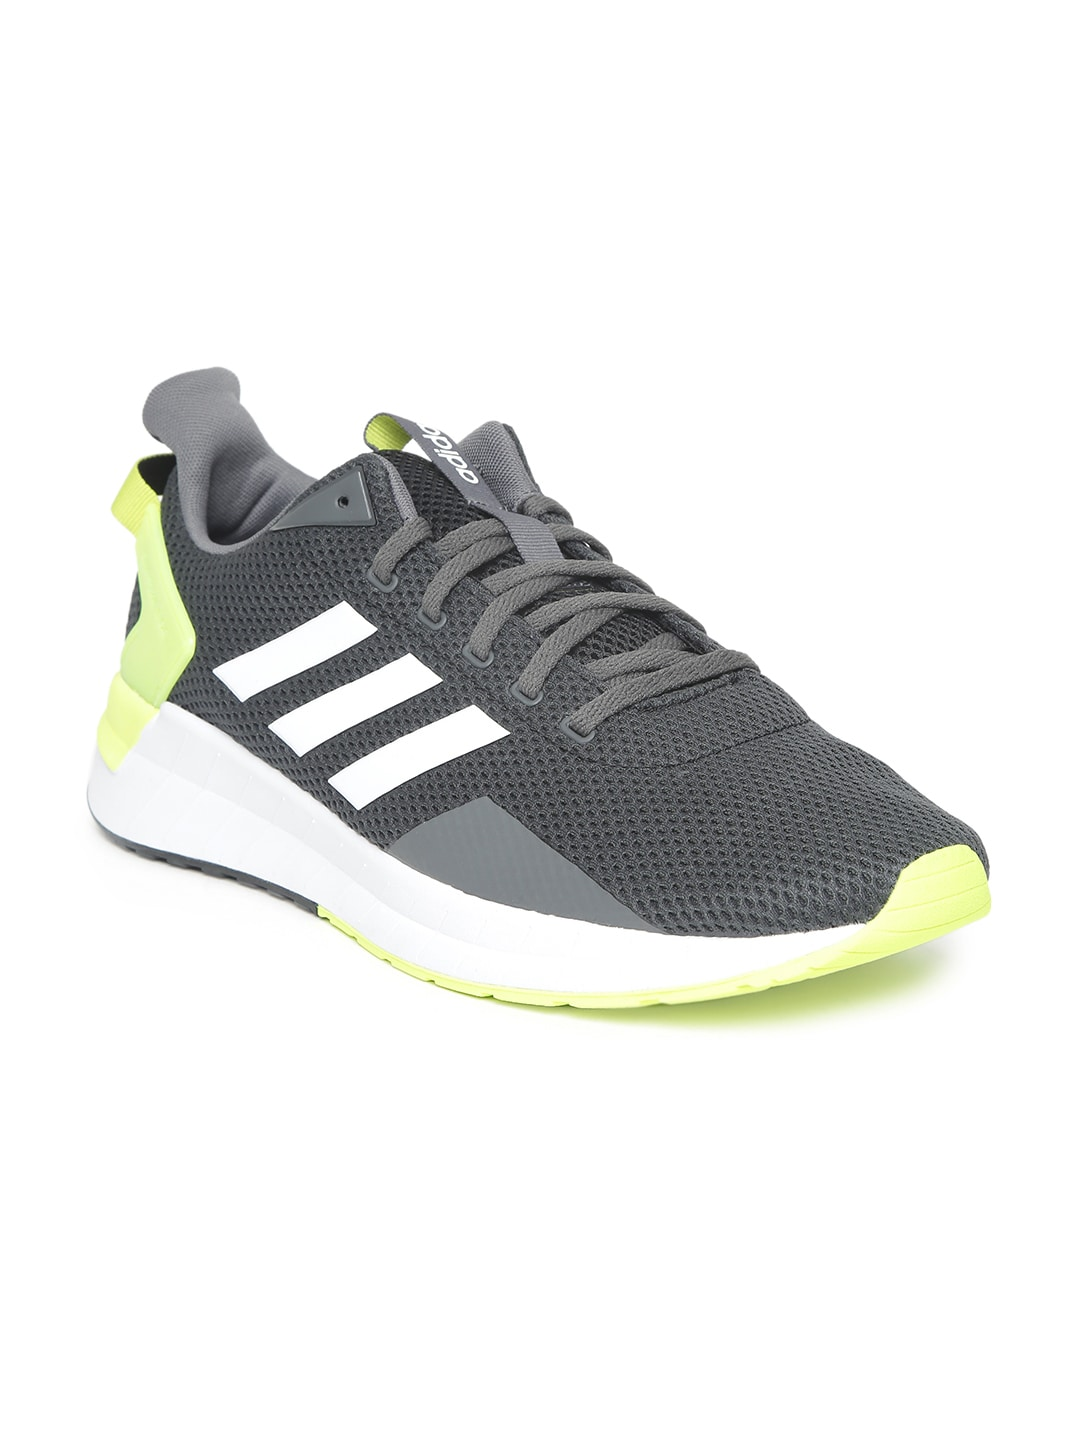 save off 3f75e eb285 Adidas Basketball Shoes  Buy Adidas Basketball Shoes Online in India at  Best Price